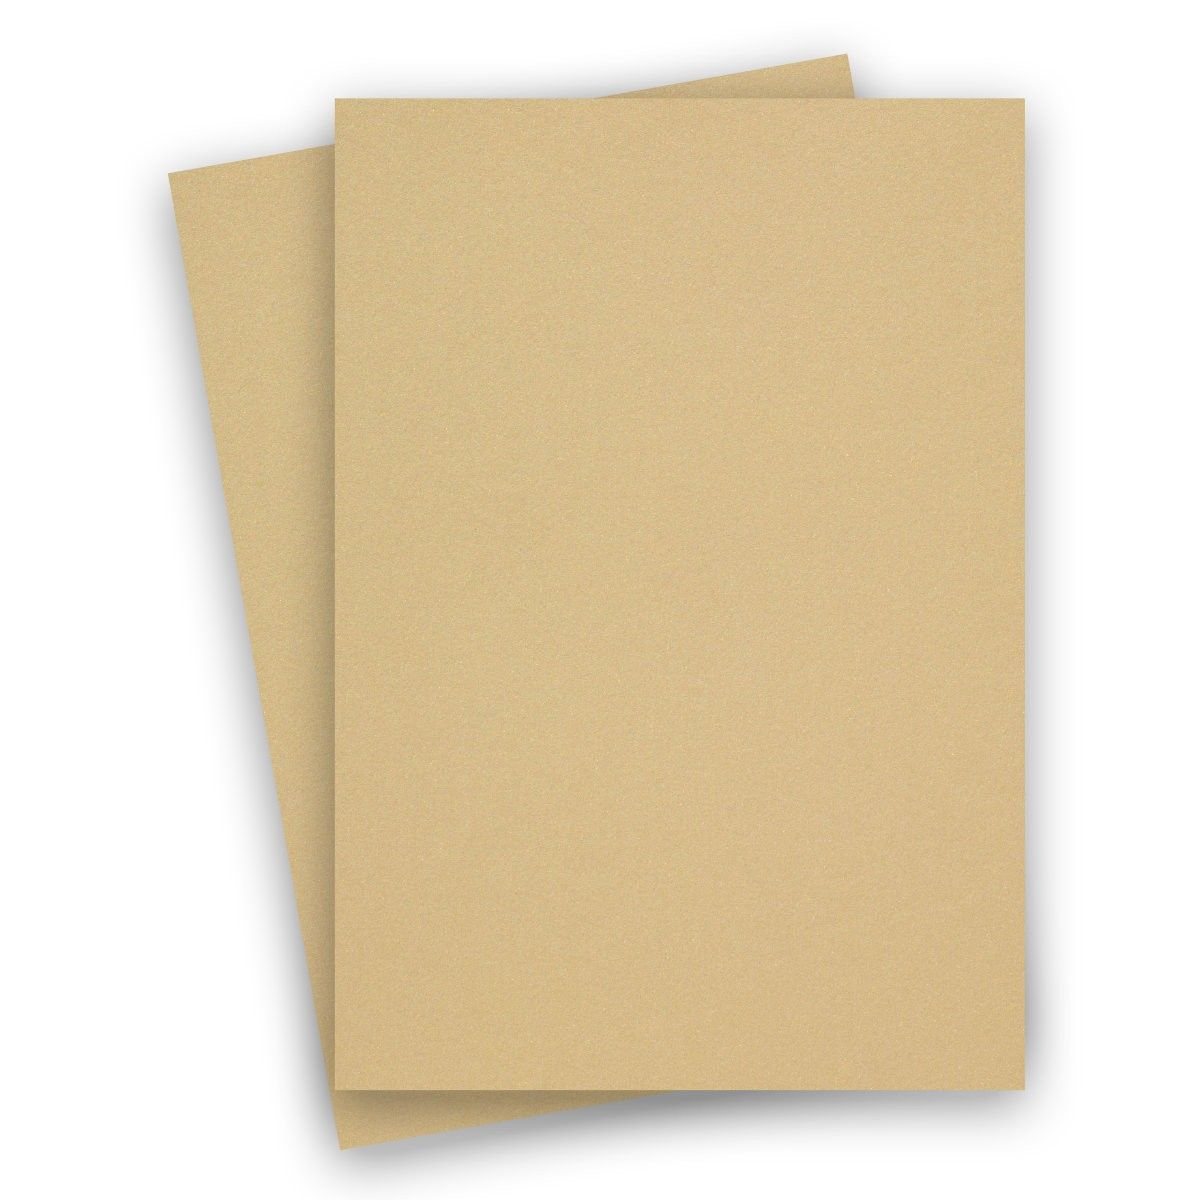 Curious Metallic Champagne 8 1 2 X 14 Legal Size Cardstock Paper 300 Gsm 111lb Cover 150 Pk Legal Size Paper Cardstock Paper Metallic Paper